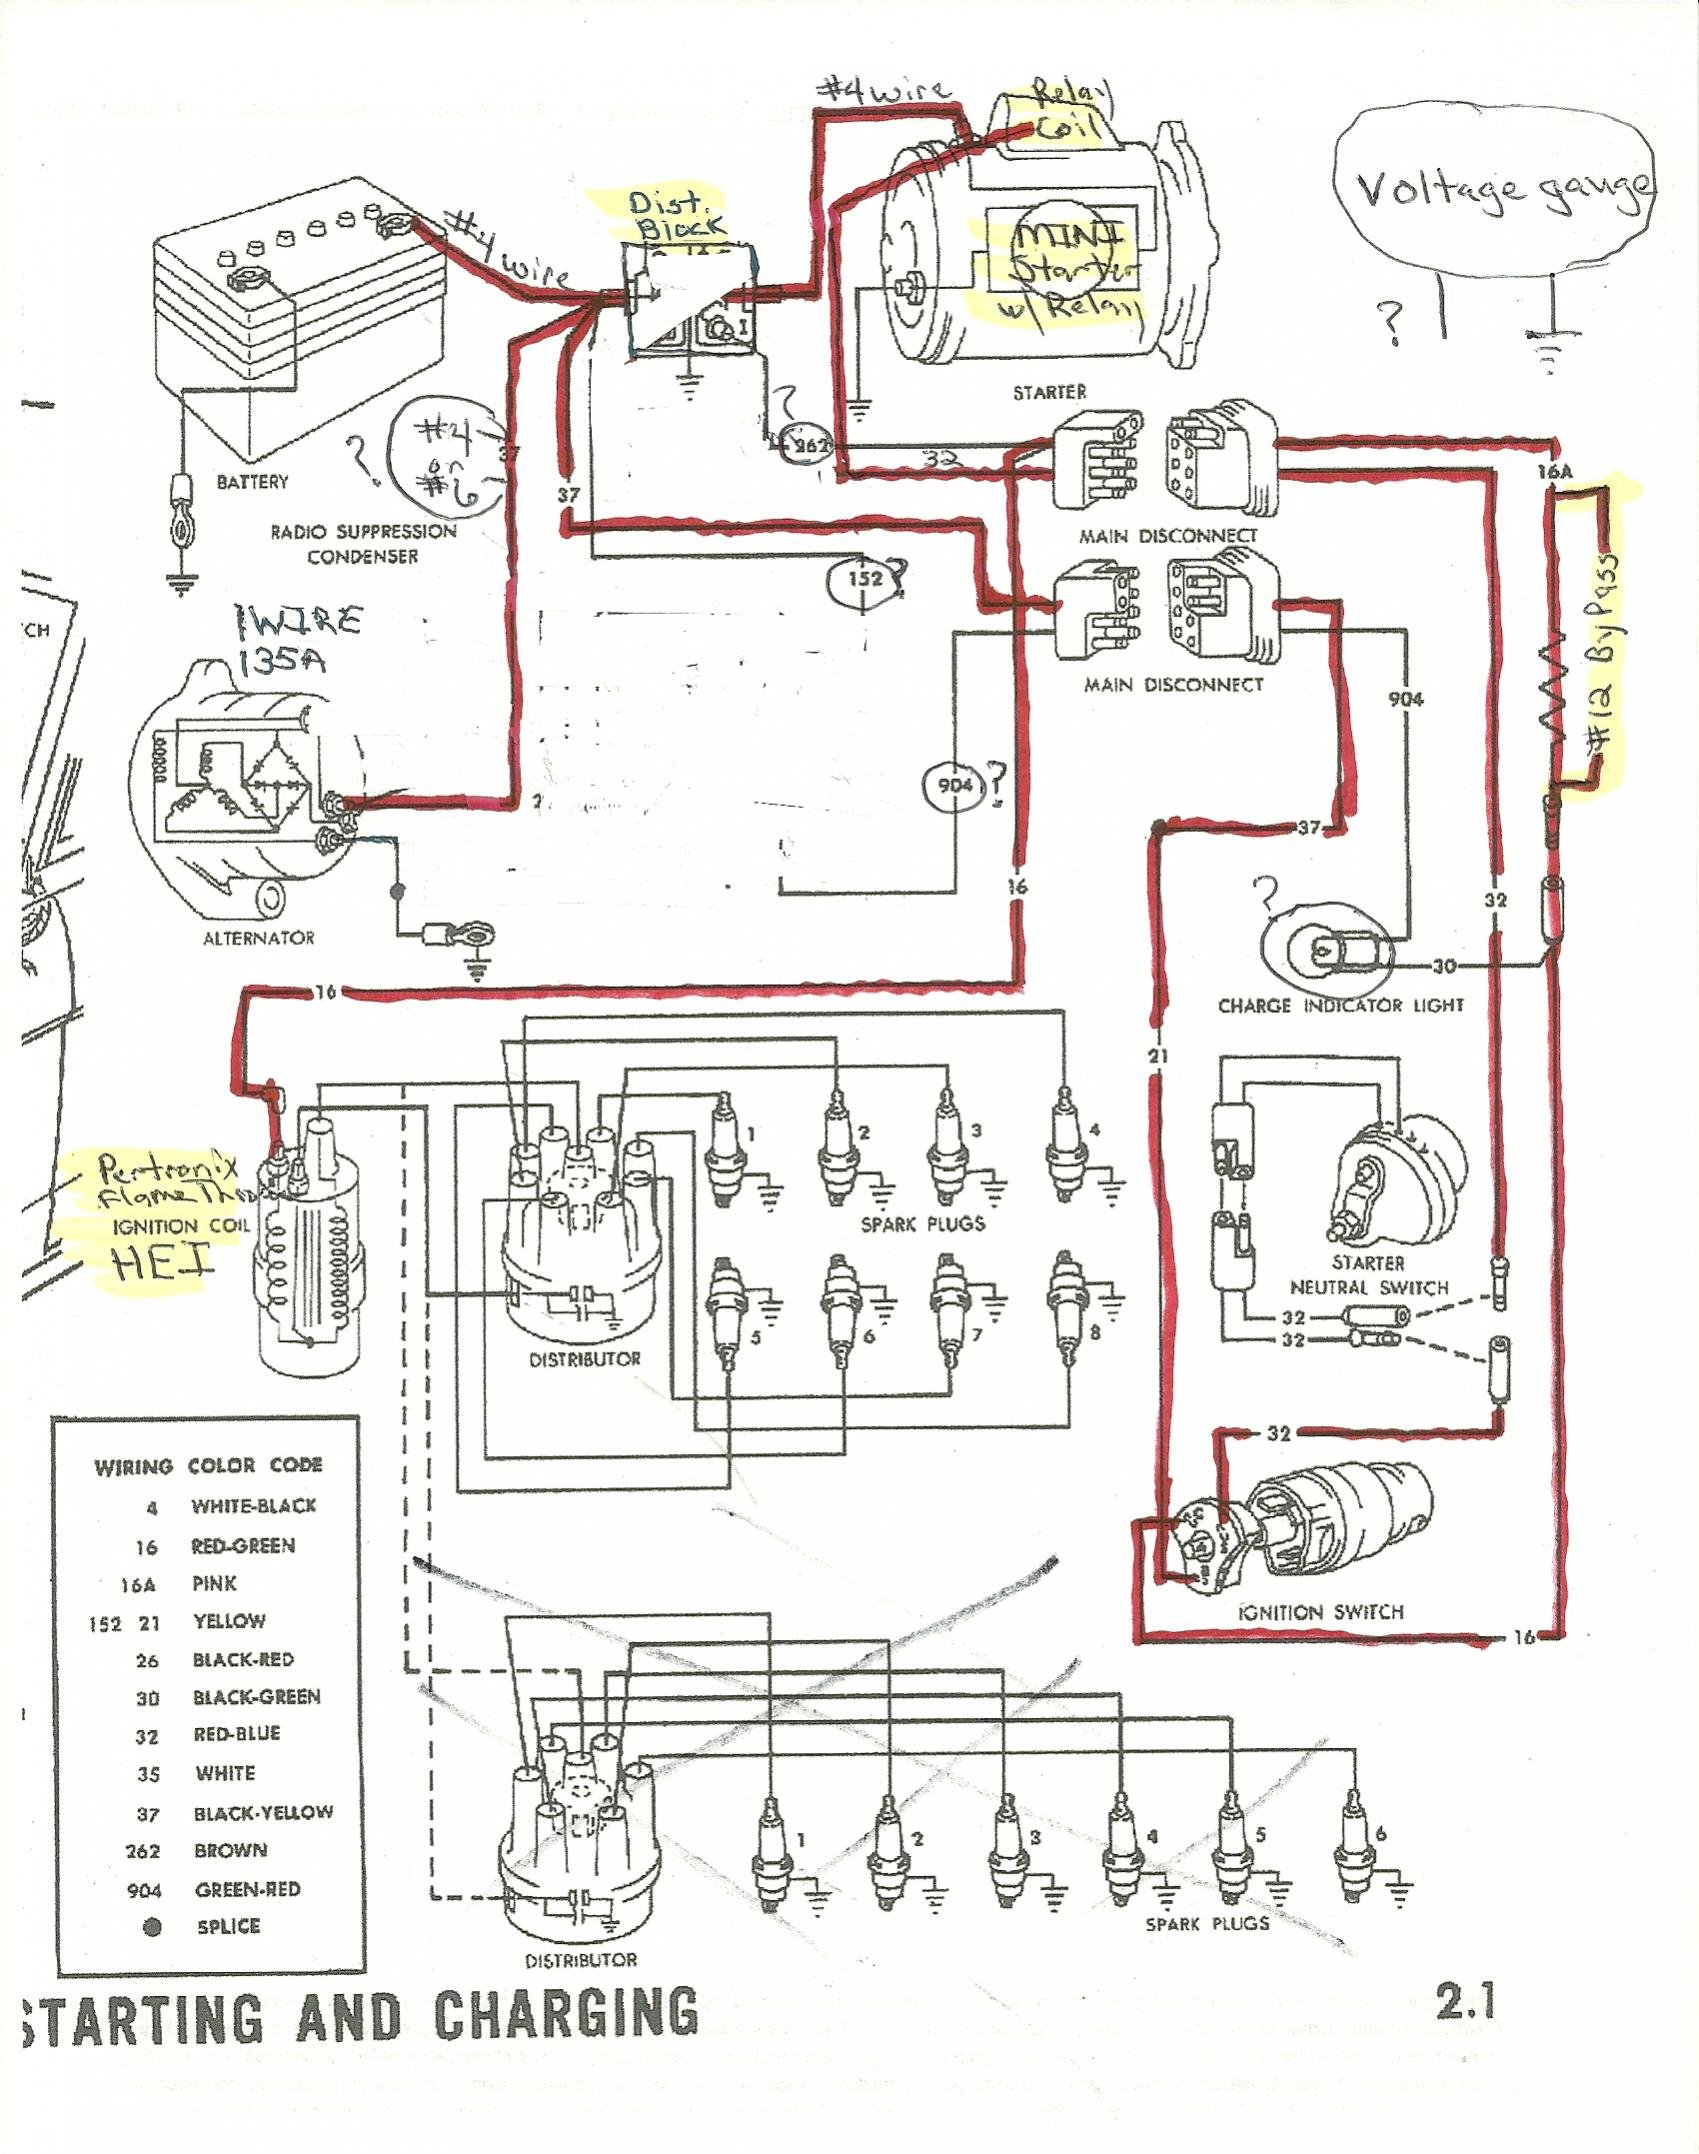 69 Ford Alternator Wiring Circuit Diagram Schematic 1965 Mustang Harness Starter And Distributor Forum F100